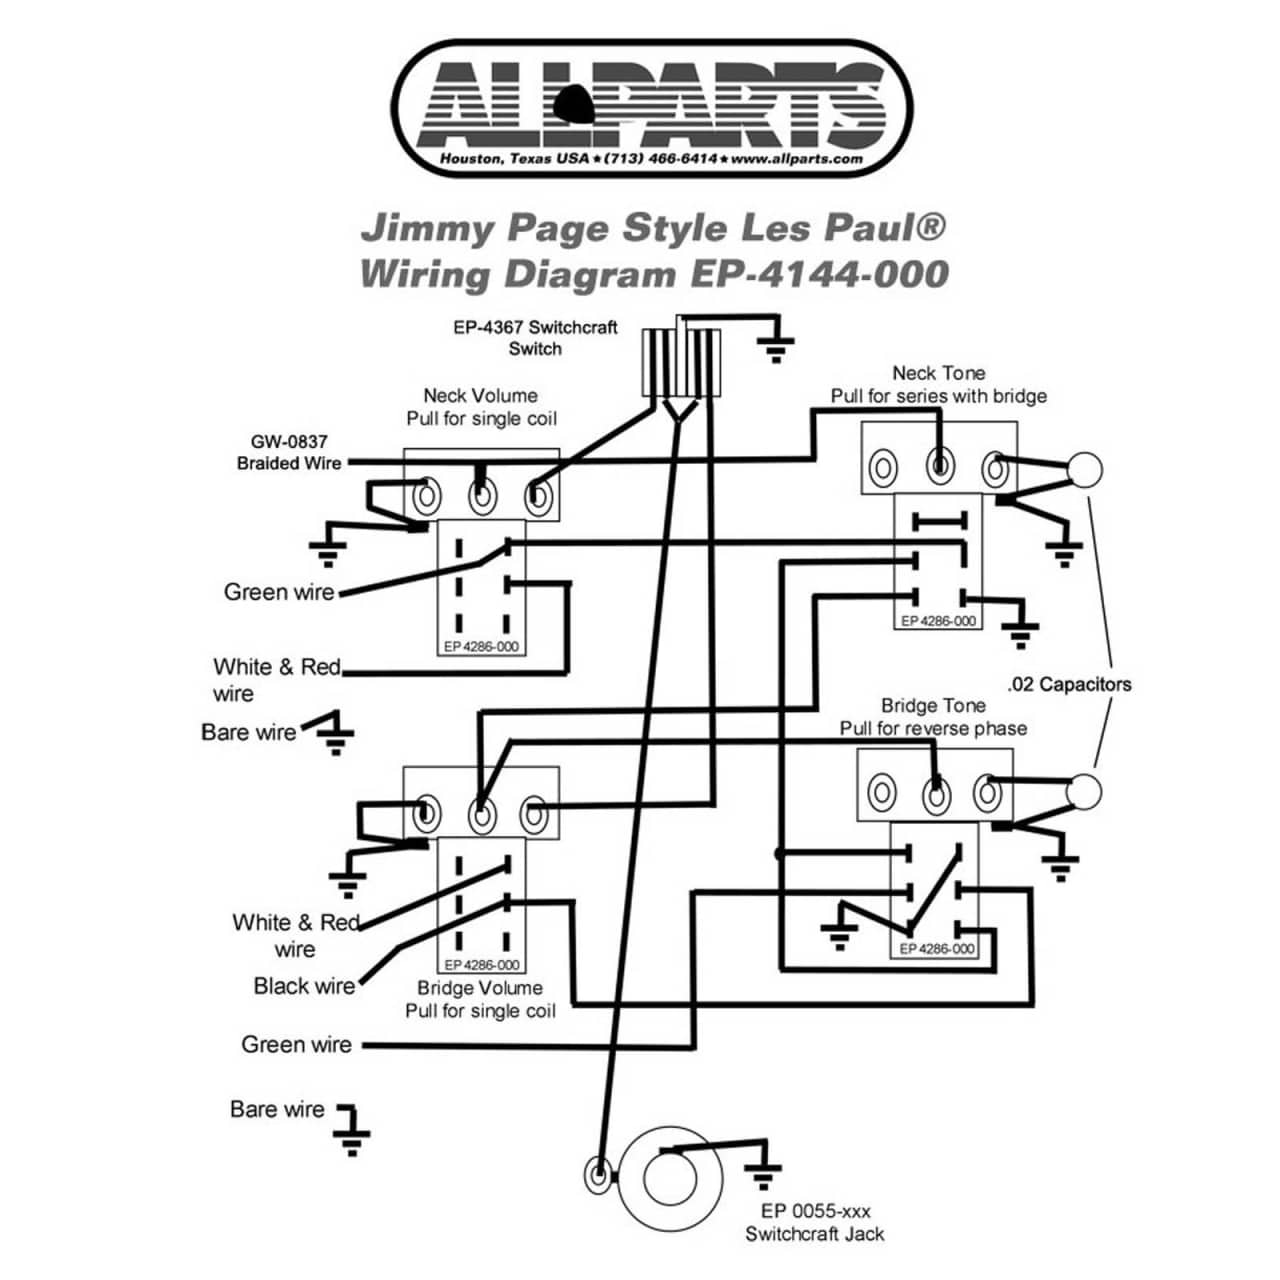 Gibson Les Paul Drawing At Free For Personal Use Wiring Harness 1280x1280 Kit Jimmy Page Complete With Reverb